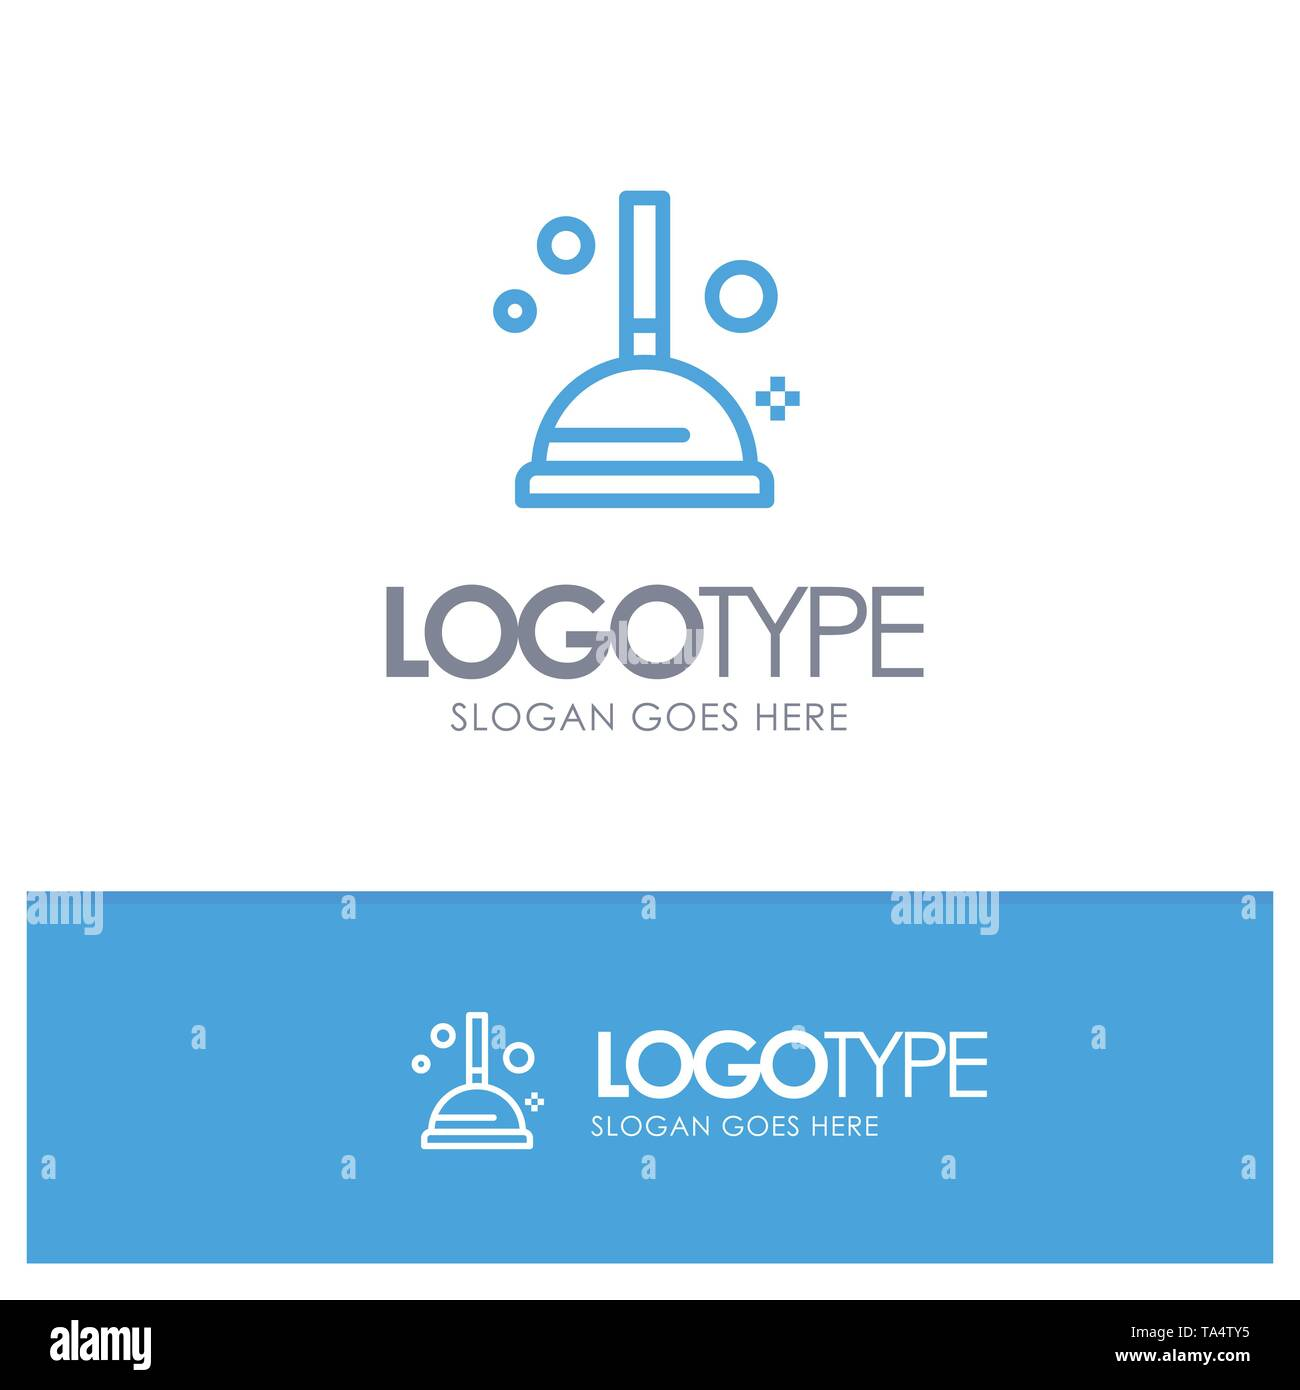 Cleaning, Improvement, Plunger Blue outLine Logo with place for tagline - Stock Image